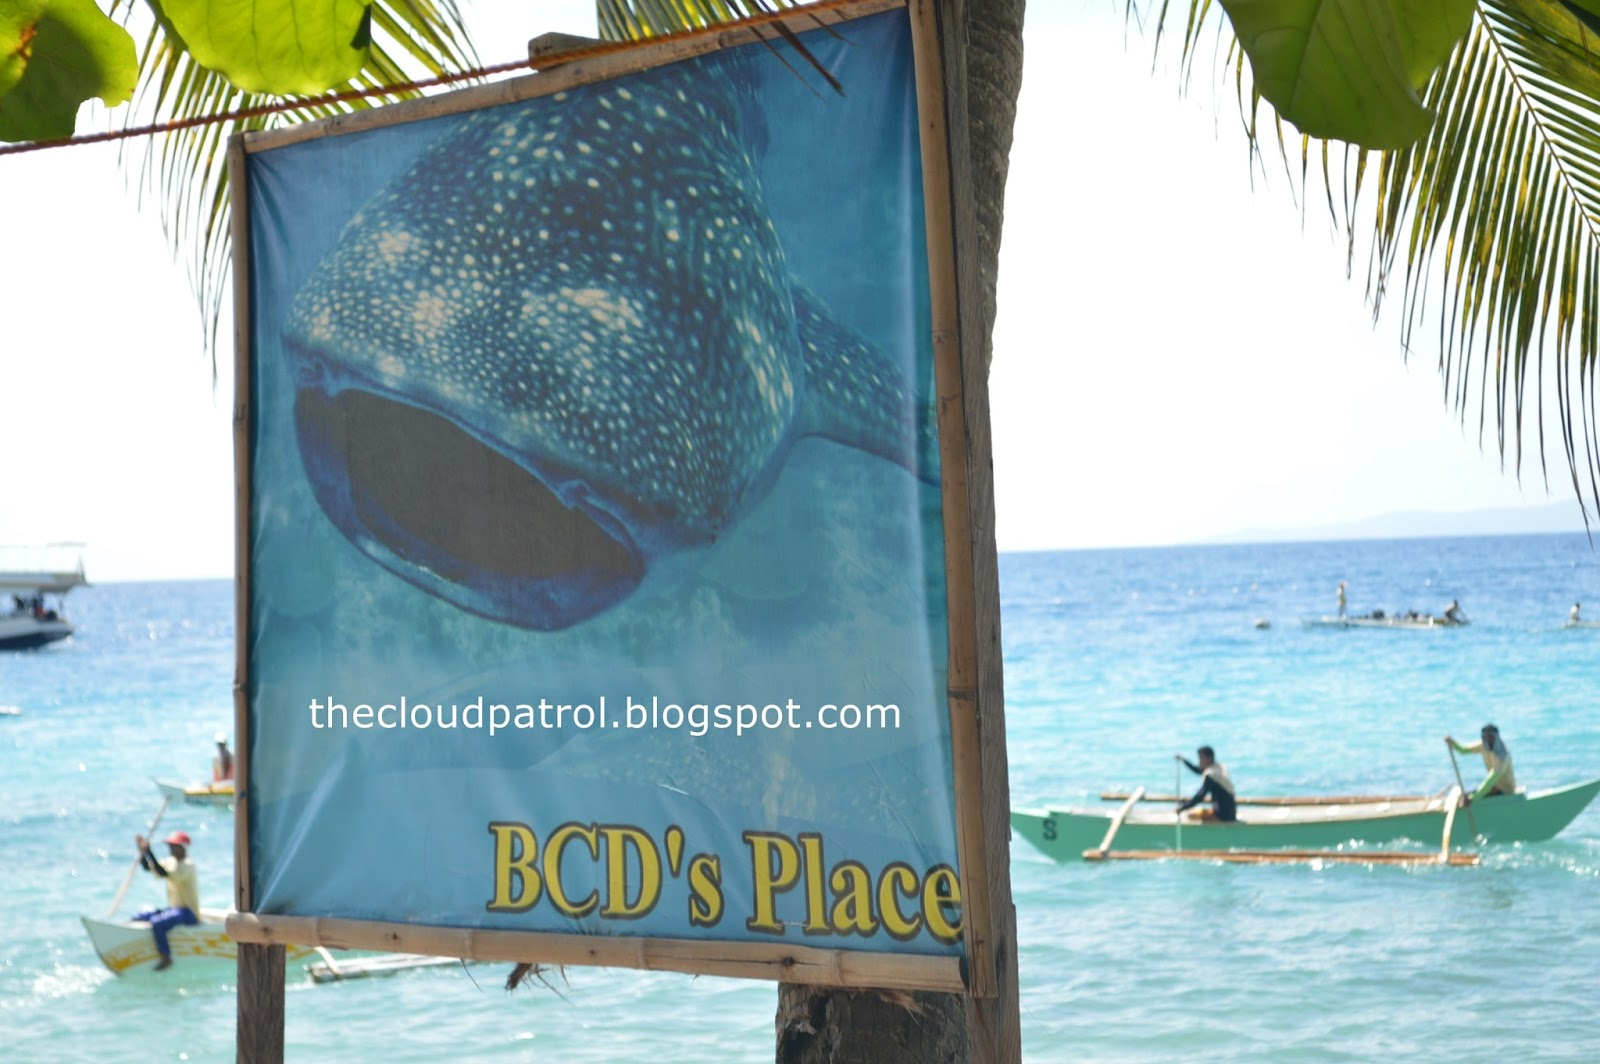 Butanding, whale shark, cebu, oslob, philippines, BCD, BCD's place, resort